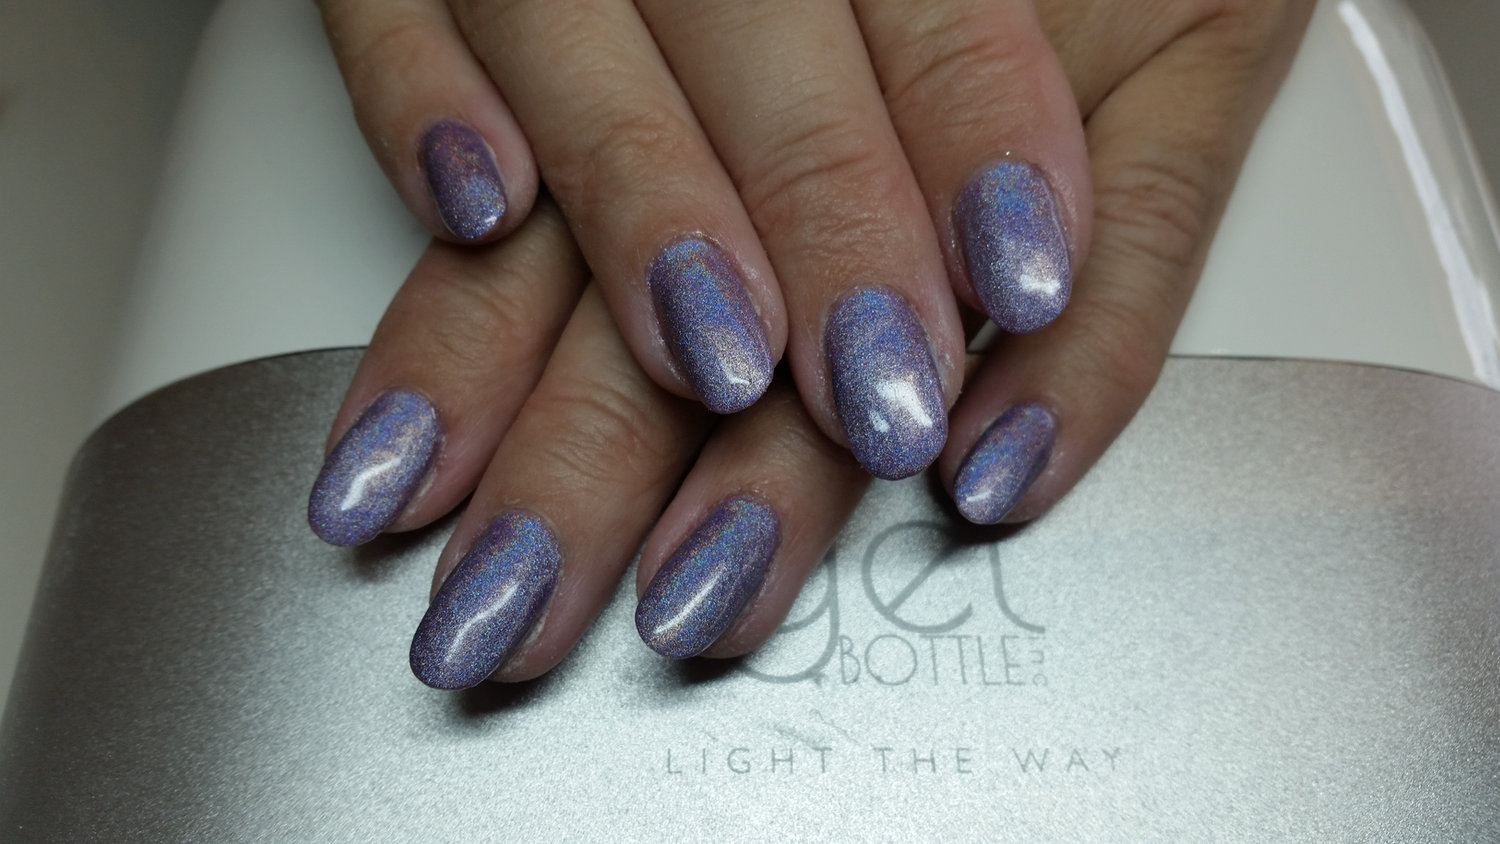 Nail Extensions acrylic or gel